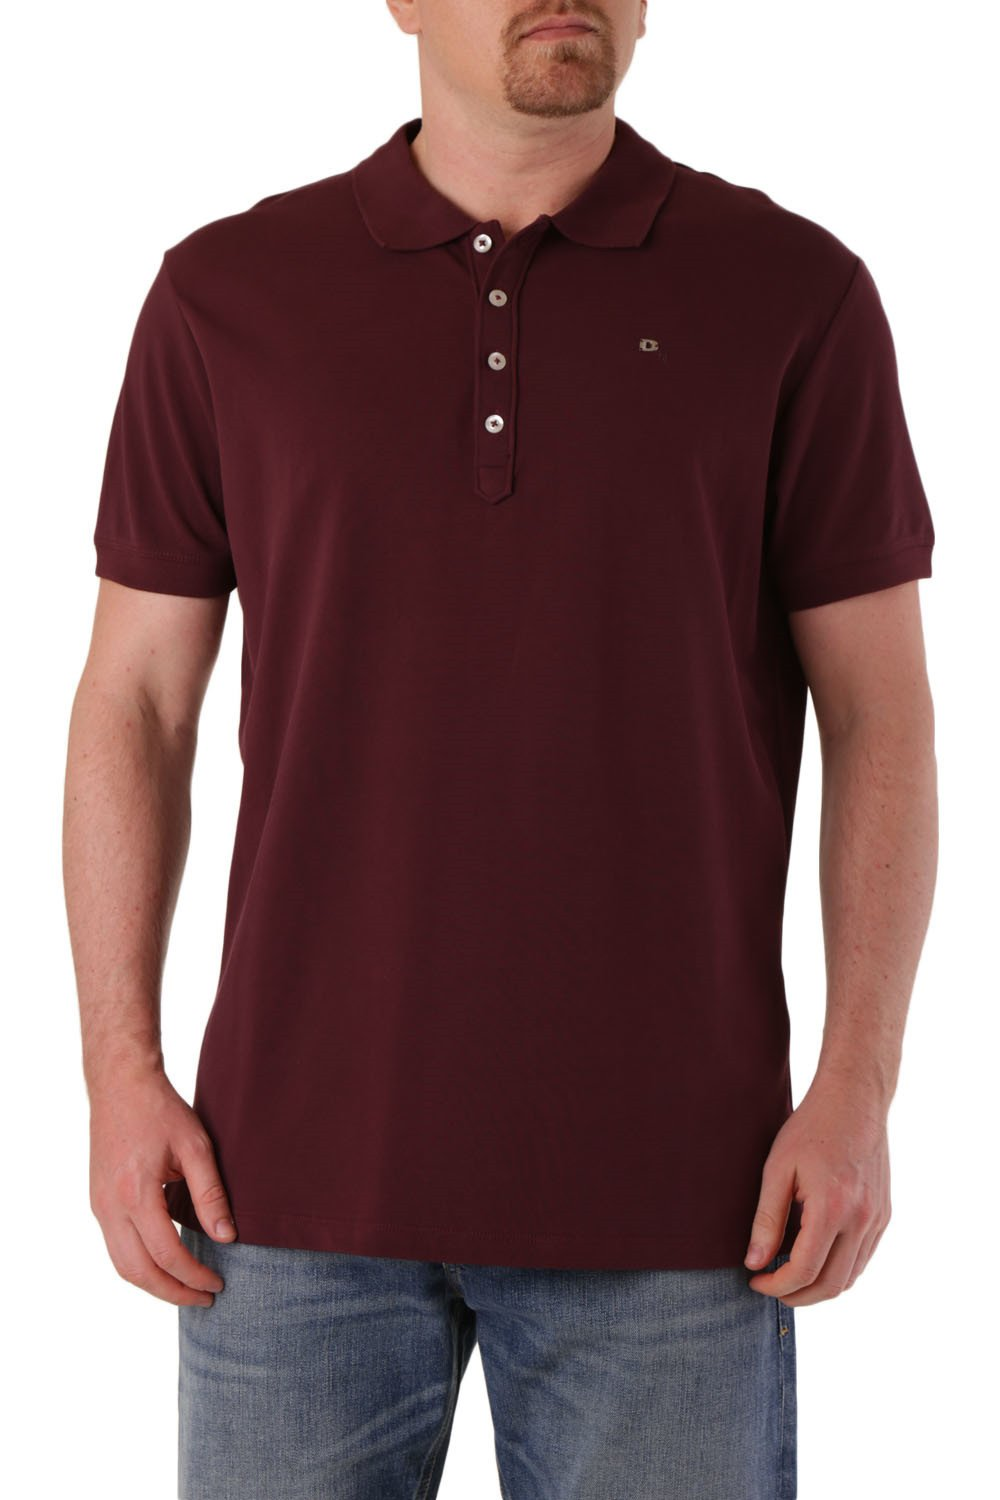 Diesel Men's Polo Shirt Various Colours 283810 - red-2 S